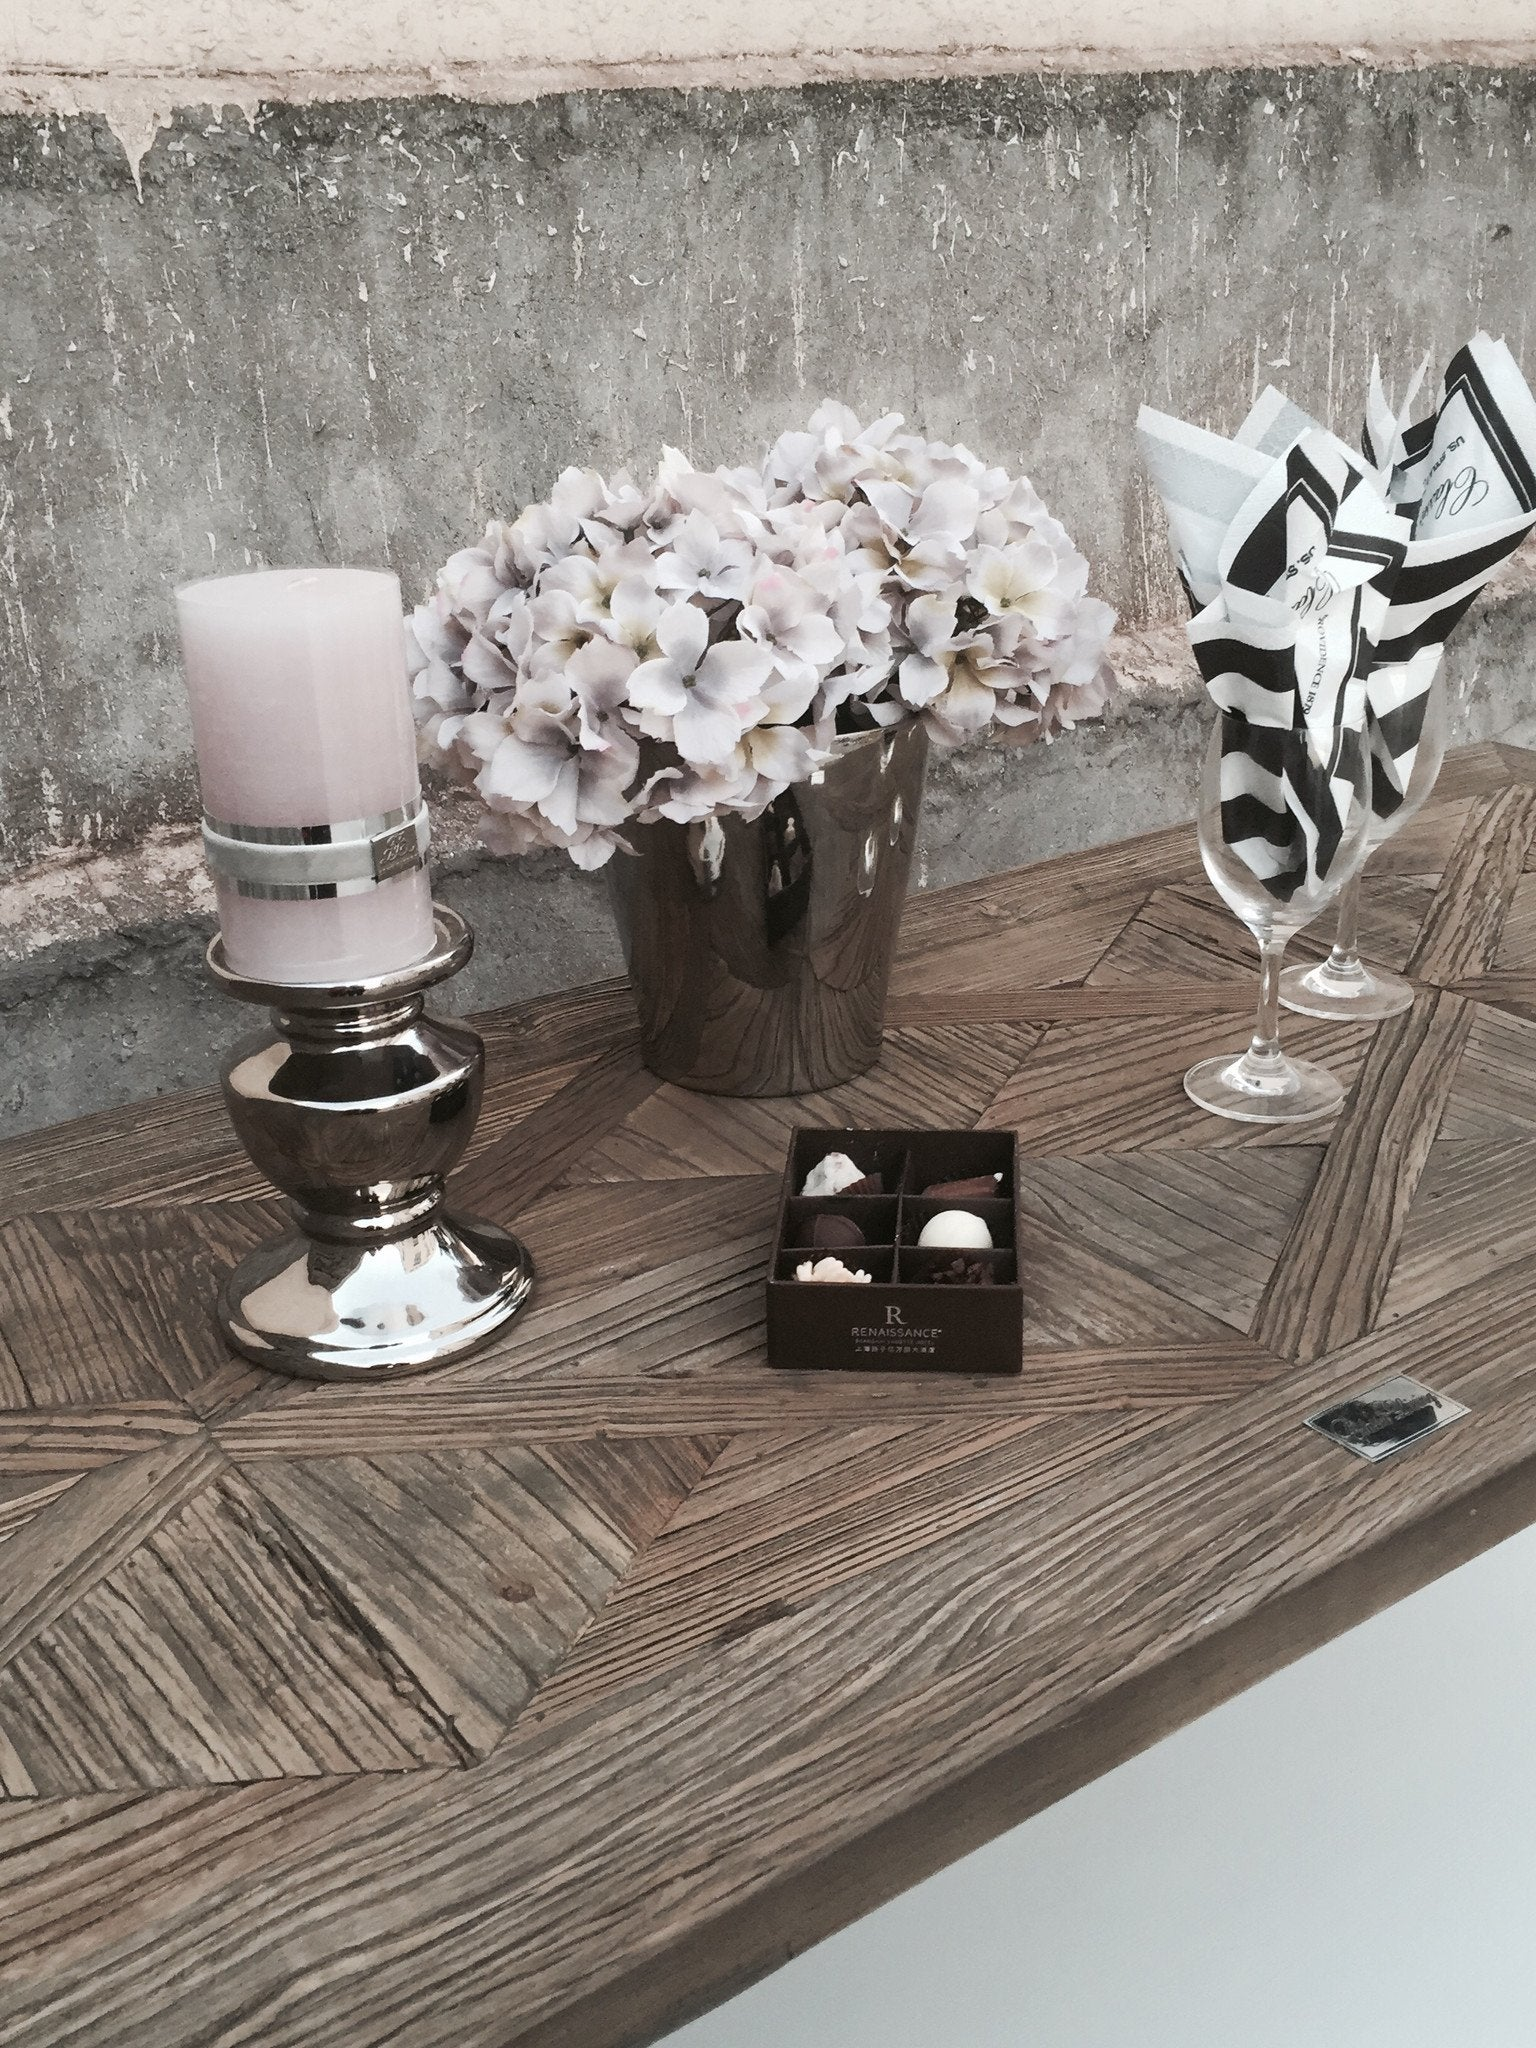 Arlington Console Table in Wood and White - Mirrored furniture - Sparkle Diamond - House of Sparkles